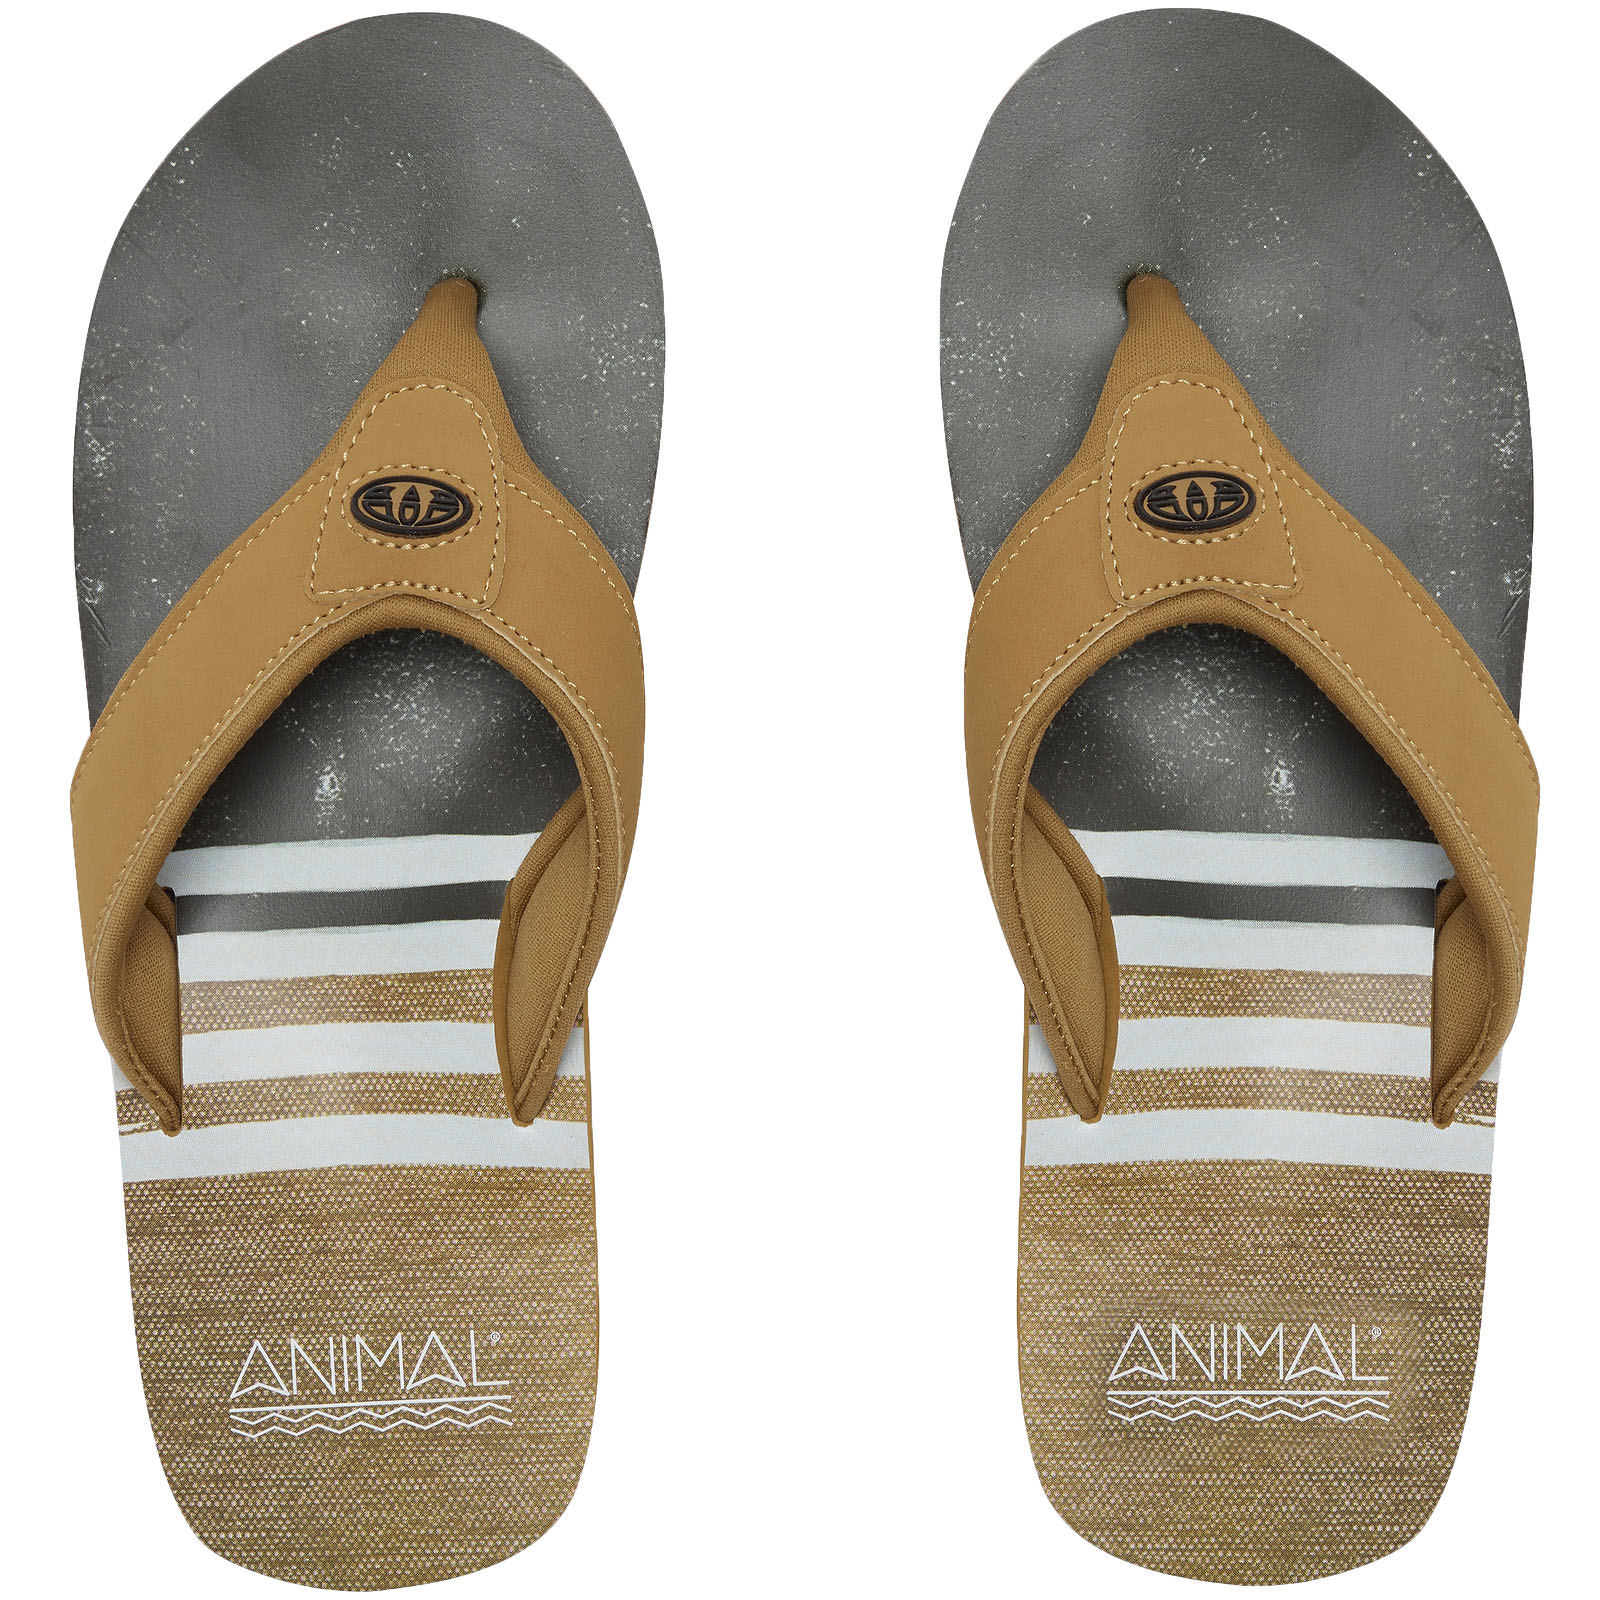 ba67161763db69 ... Mens Flip Flops Patina Brown Fm8sn004 UK Size 8. About this product.  Picture 1 of 3  Picture 2 of 3 ...